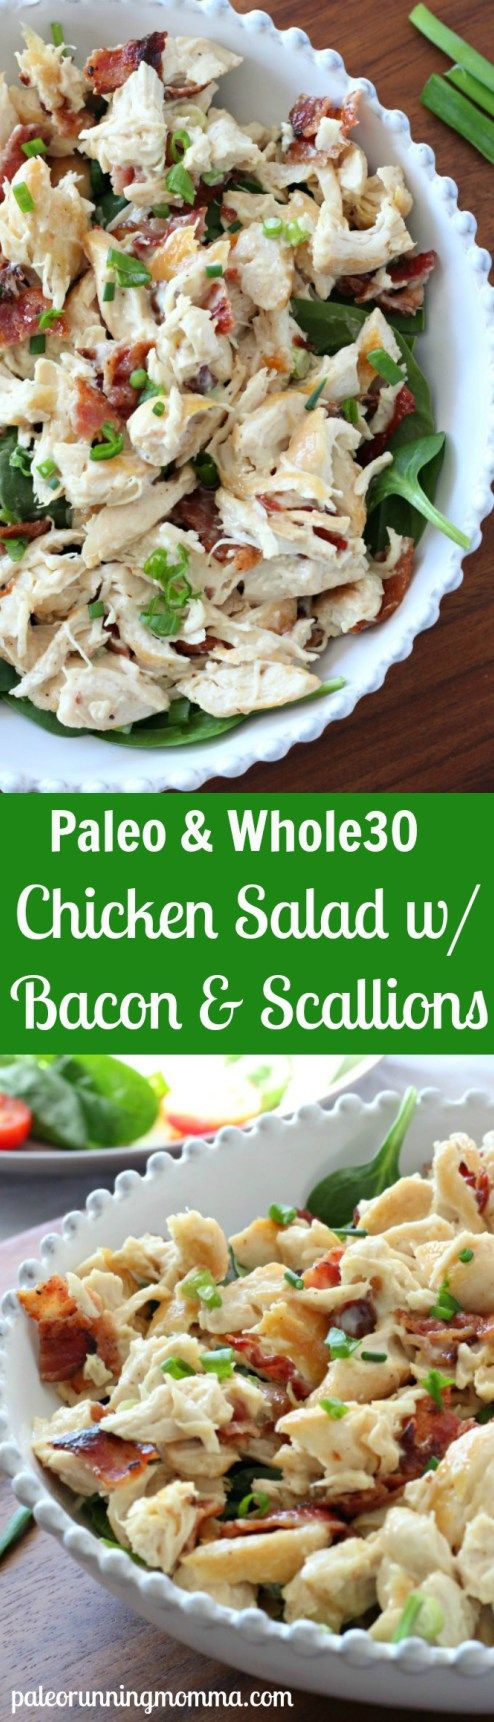 Chicken Salad with Bacon and Green Onions FAVORITE LUNCH #whole30 add celery, cucumber, pepper, even avocado and serve on bed of spinach